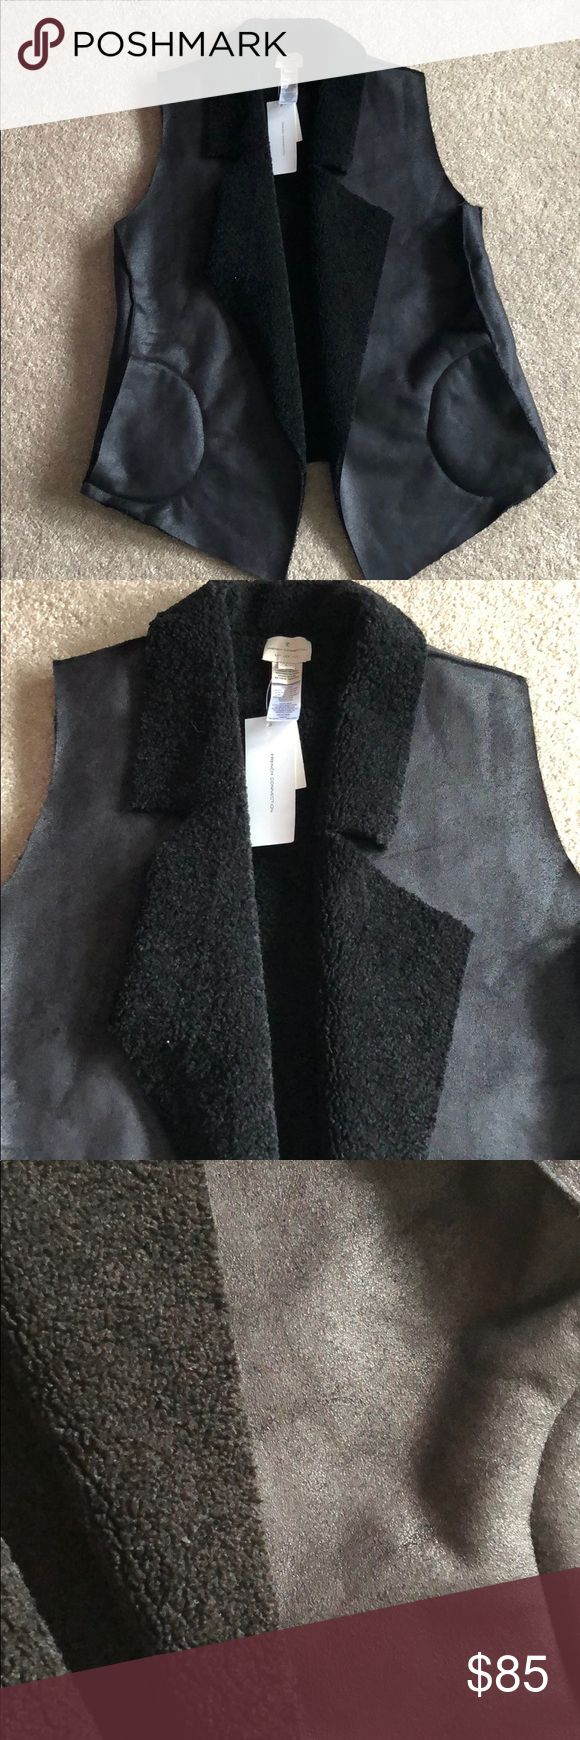 French Connection Shearling Vest NWT Black Side pockets French Connection Jackets & Coats Vests